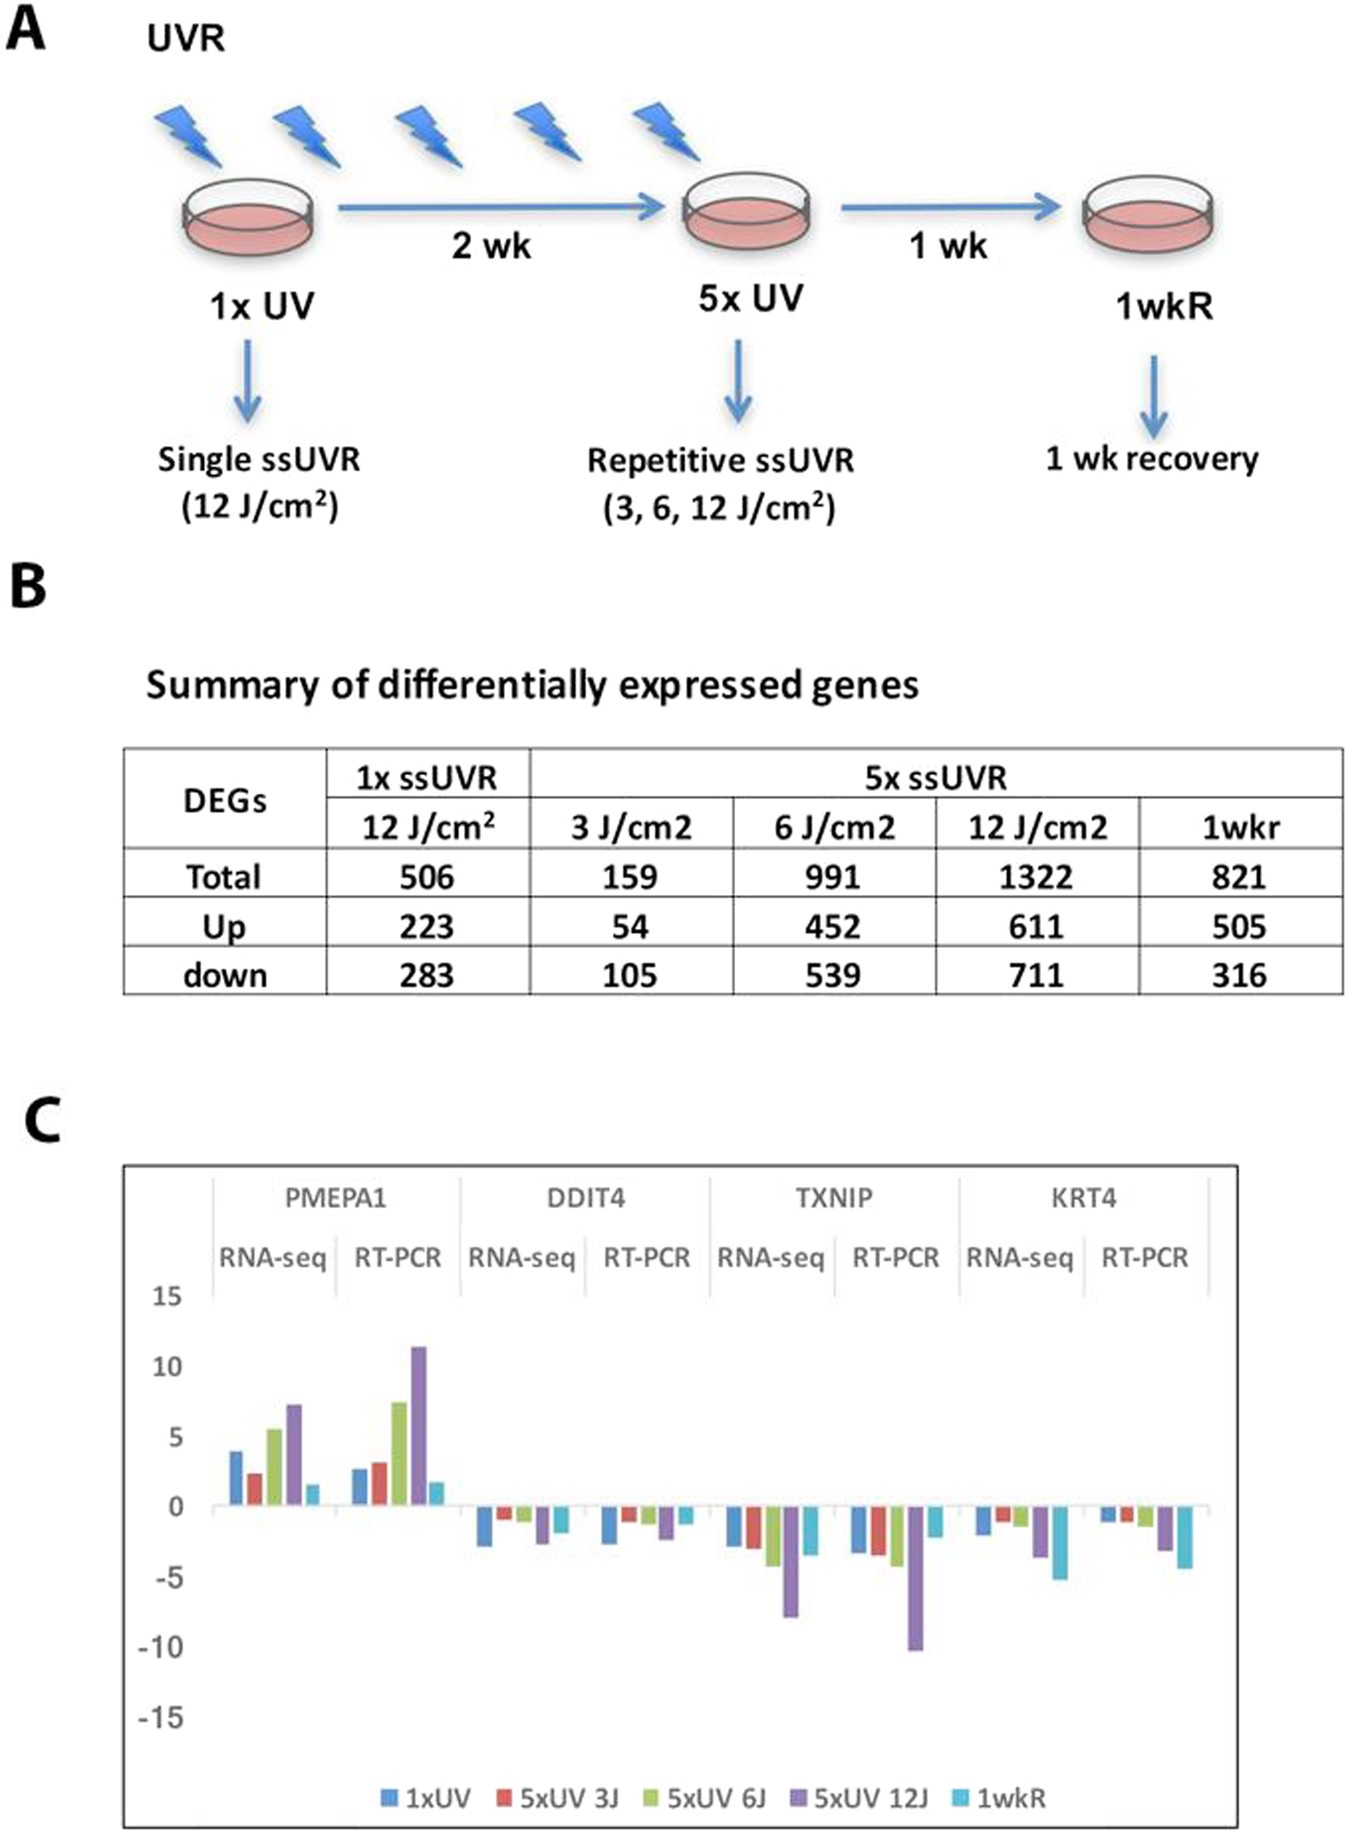 Transcription factors and stress response gene alterations in human  keratinocytes following Solar Simulated Ultra Violet Radiation  a5d6ac35e2